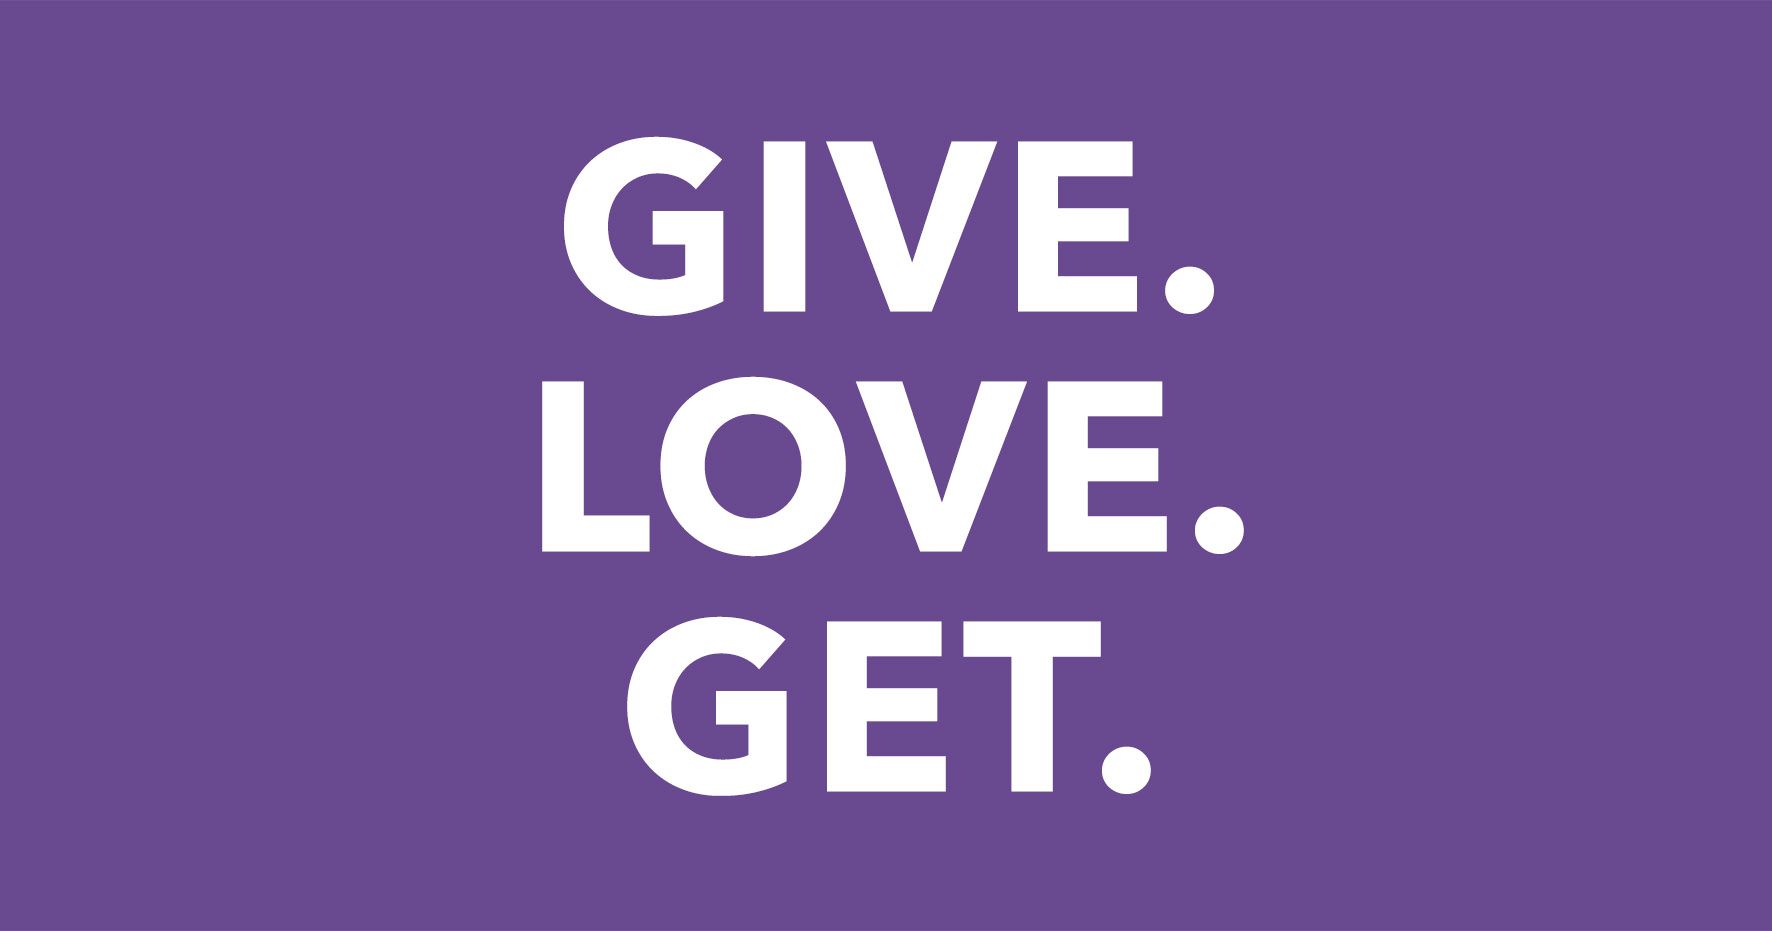 AE GIVE. LOVE. GET.